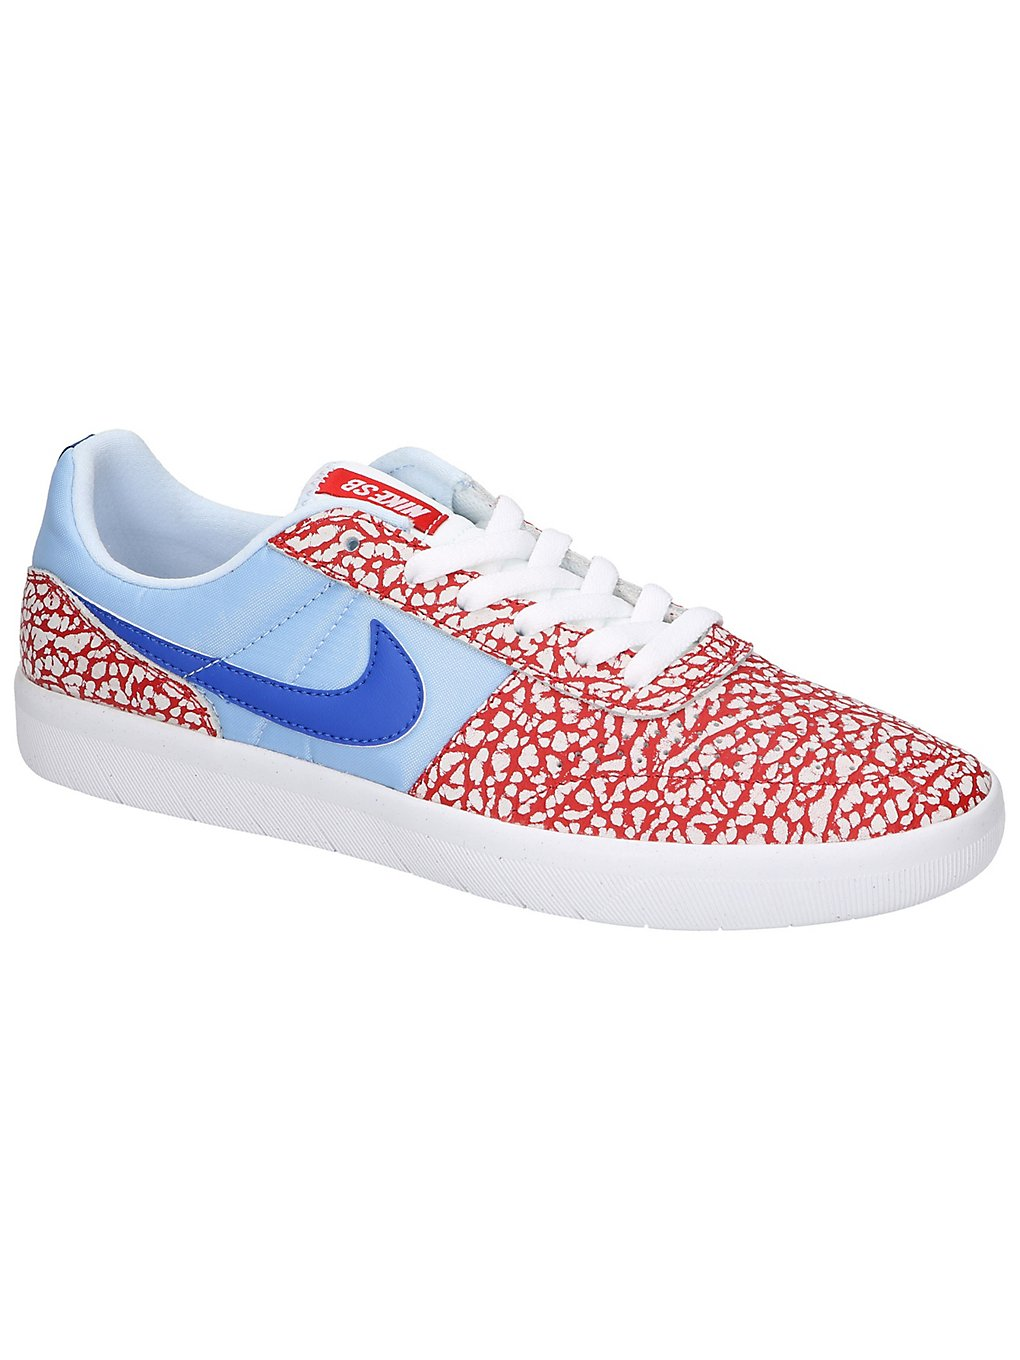 huge discount 99f10 263fe Nike SB Team Classic Skate Shoes white   game royal   psychic Gr. 11.5 US